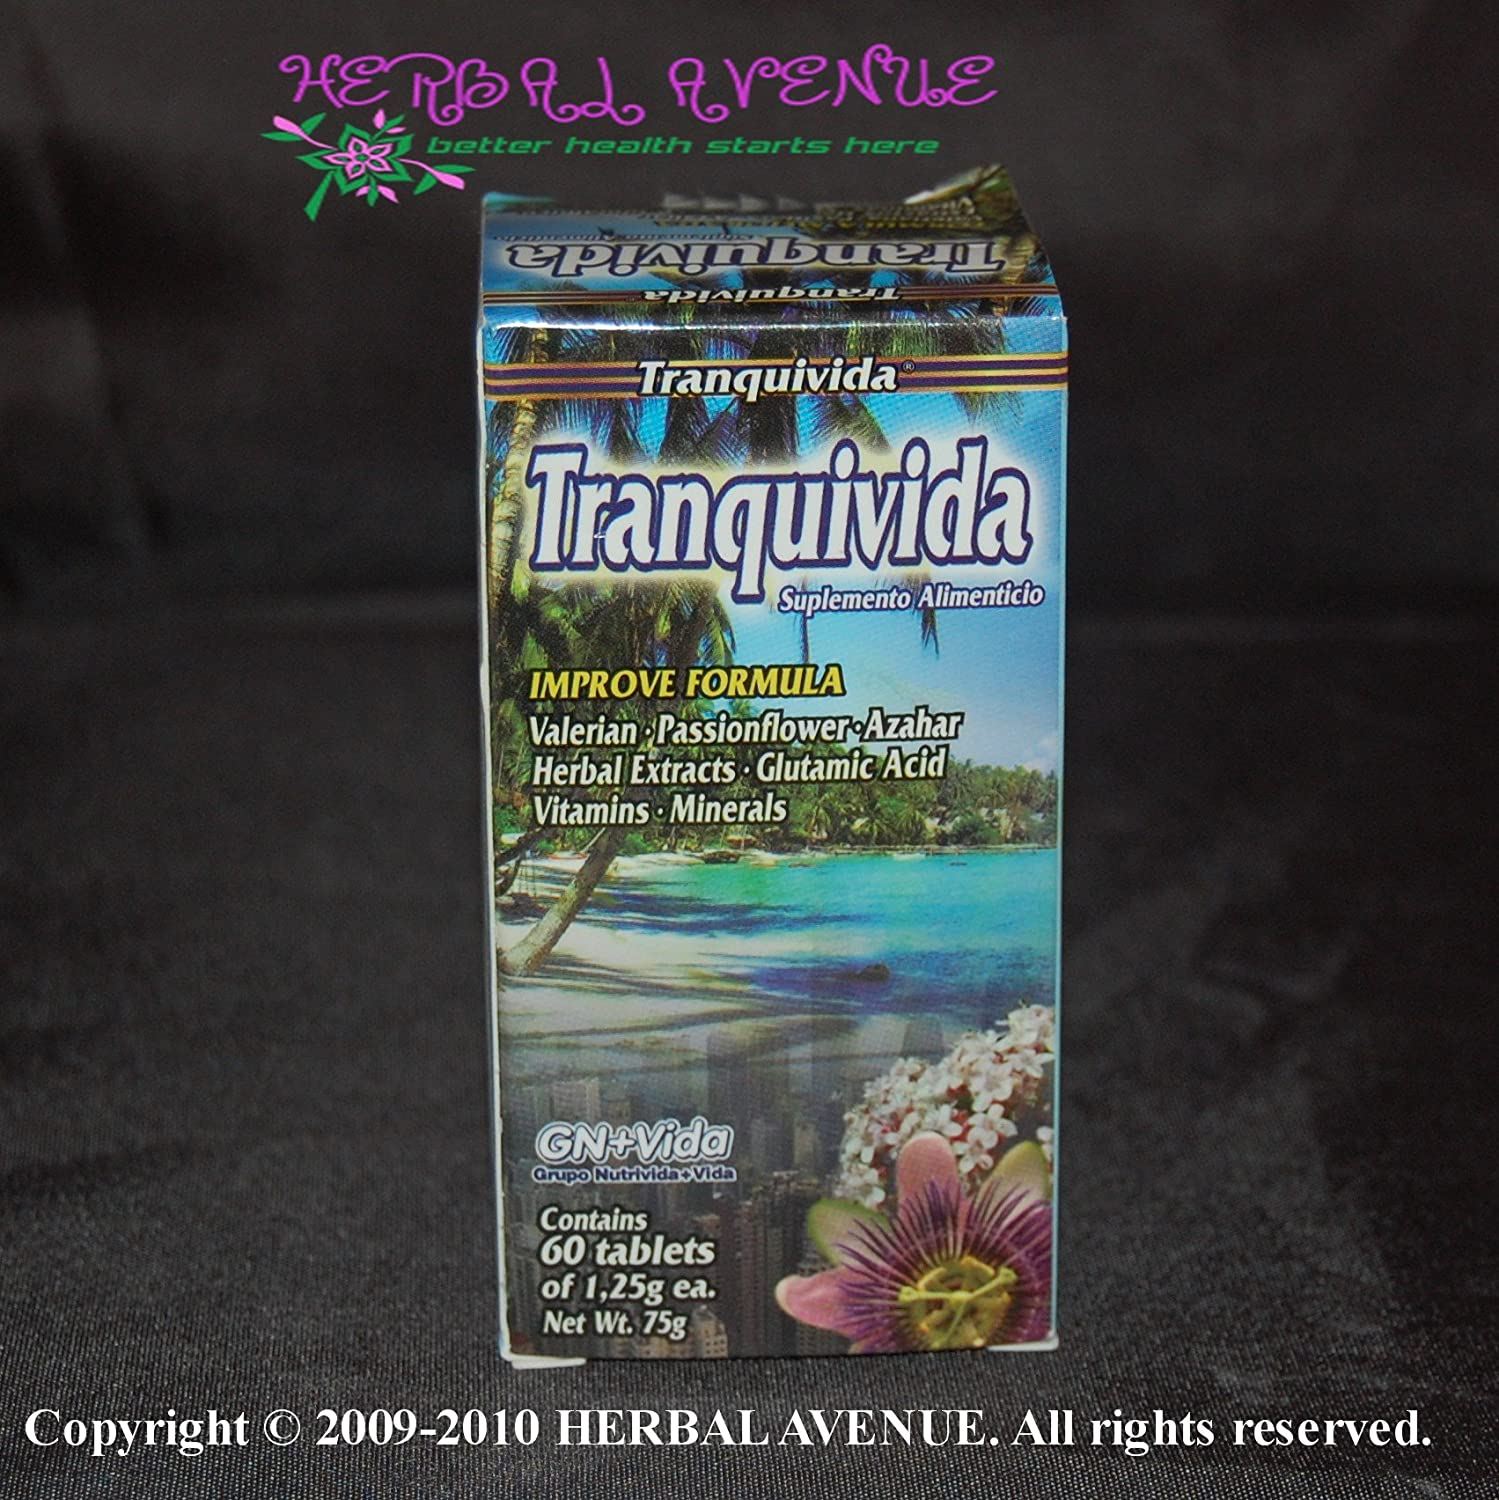 Amazon.com: 1 Frasco/Bottle - Tranquivida 60 Tabletas Valeriana - Tranquivida Valerian 60 Tablets: Health & Personal Care